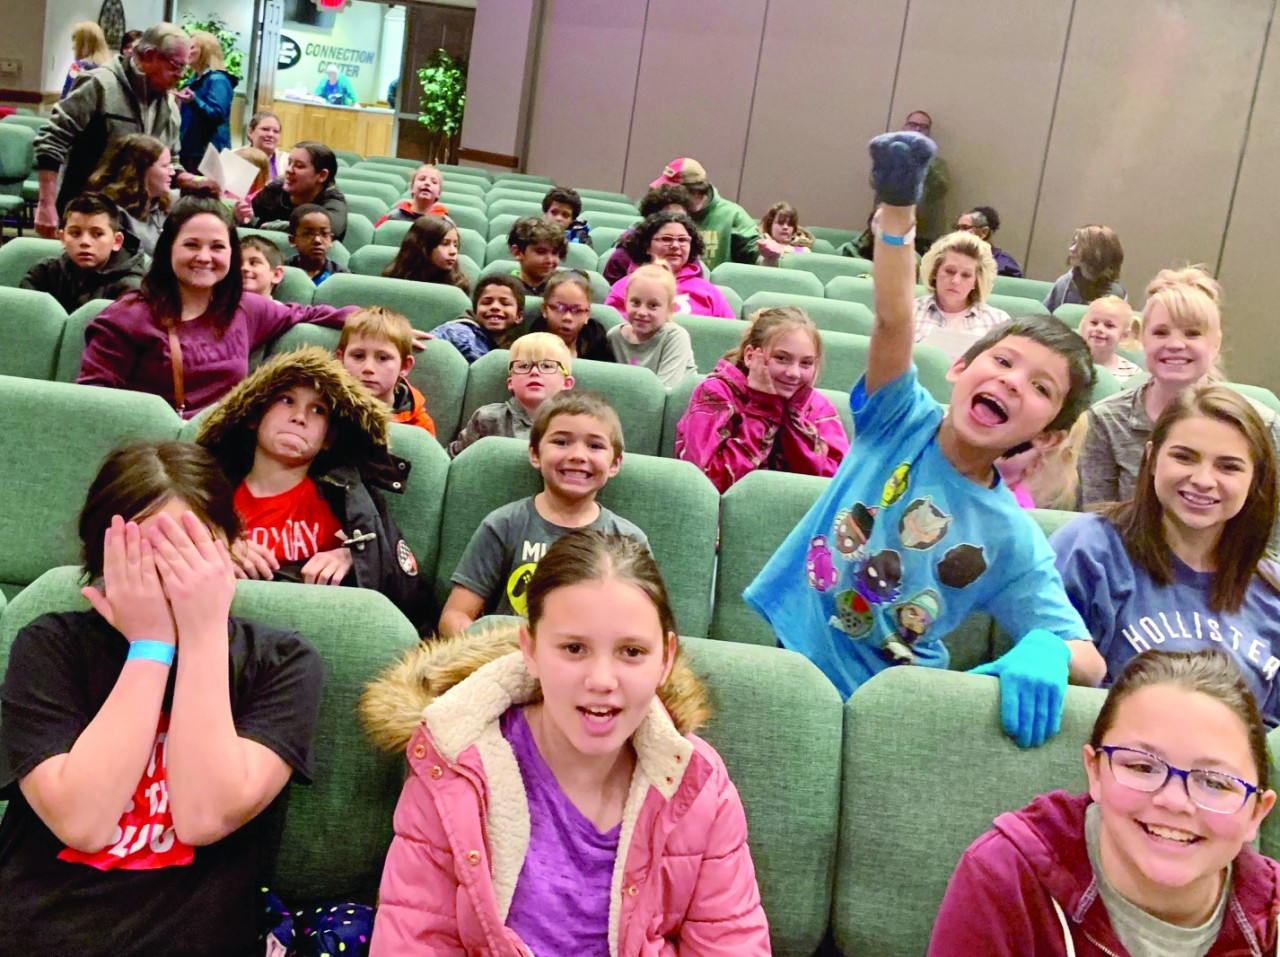 Mission Ignition fires kids' imaginations for missions - Baptist Messenger of Oklahoma